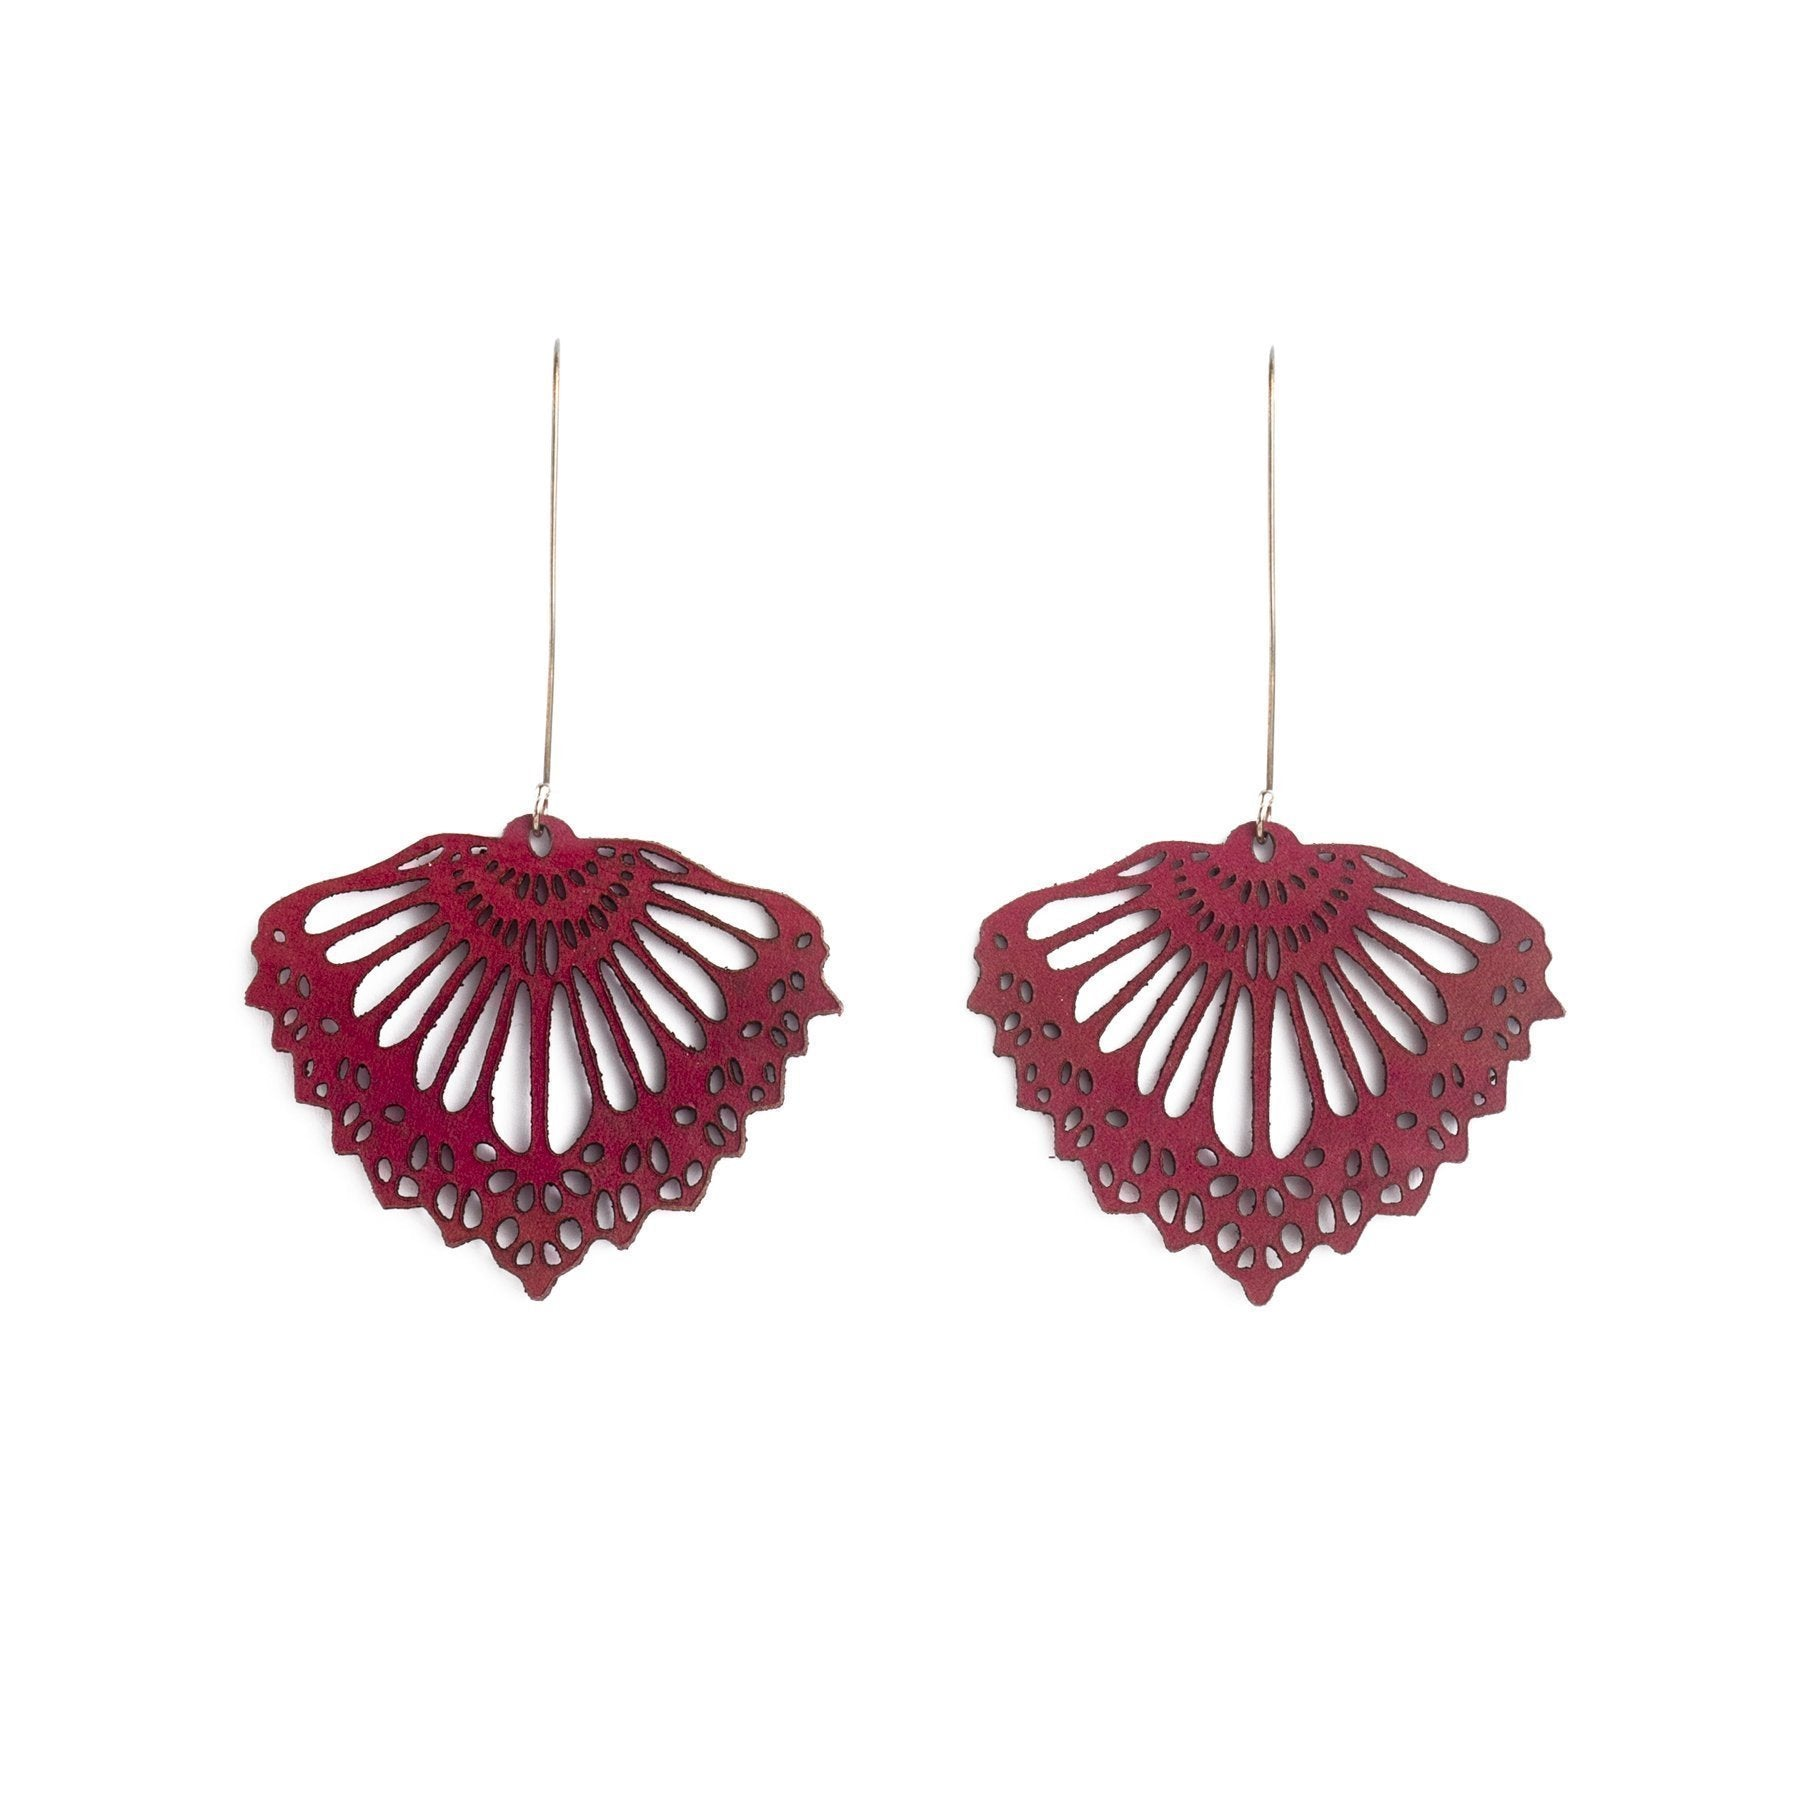 FAN LEATHER EARRINGS DEEP RED BY WHITE RABBIT DAYS JEWELRY. Laser cut from leather & hung on elegant sterling silver hooks. Subtly coloured, they transition effortlessly between day & night.